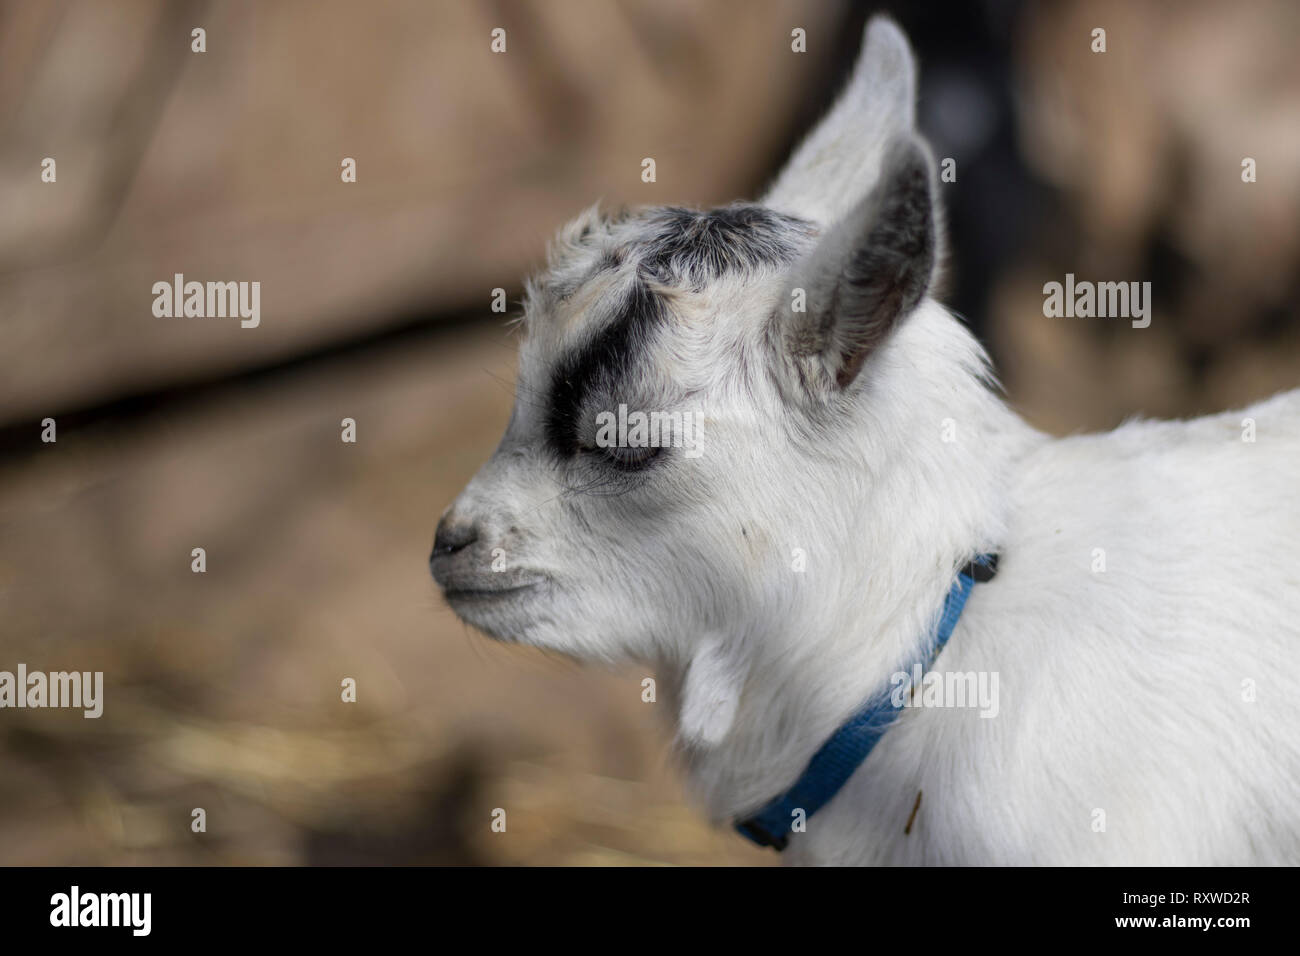 Small Pygmy goat close up. Petting zoo sanctuary with rescue animals. Cute animals close up. White and black goat. - Stock Image